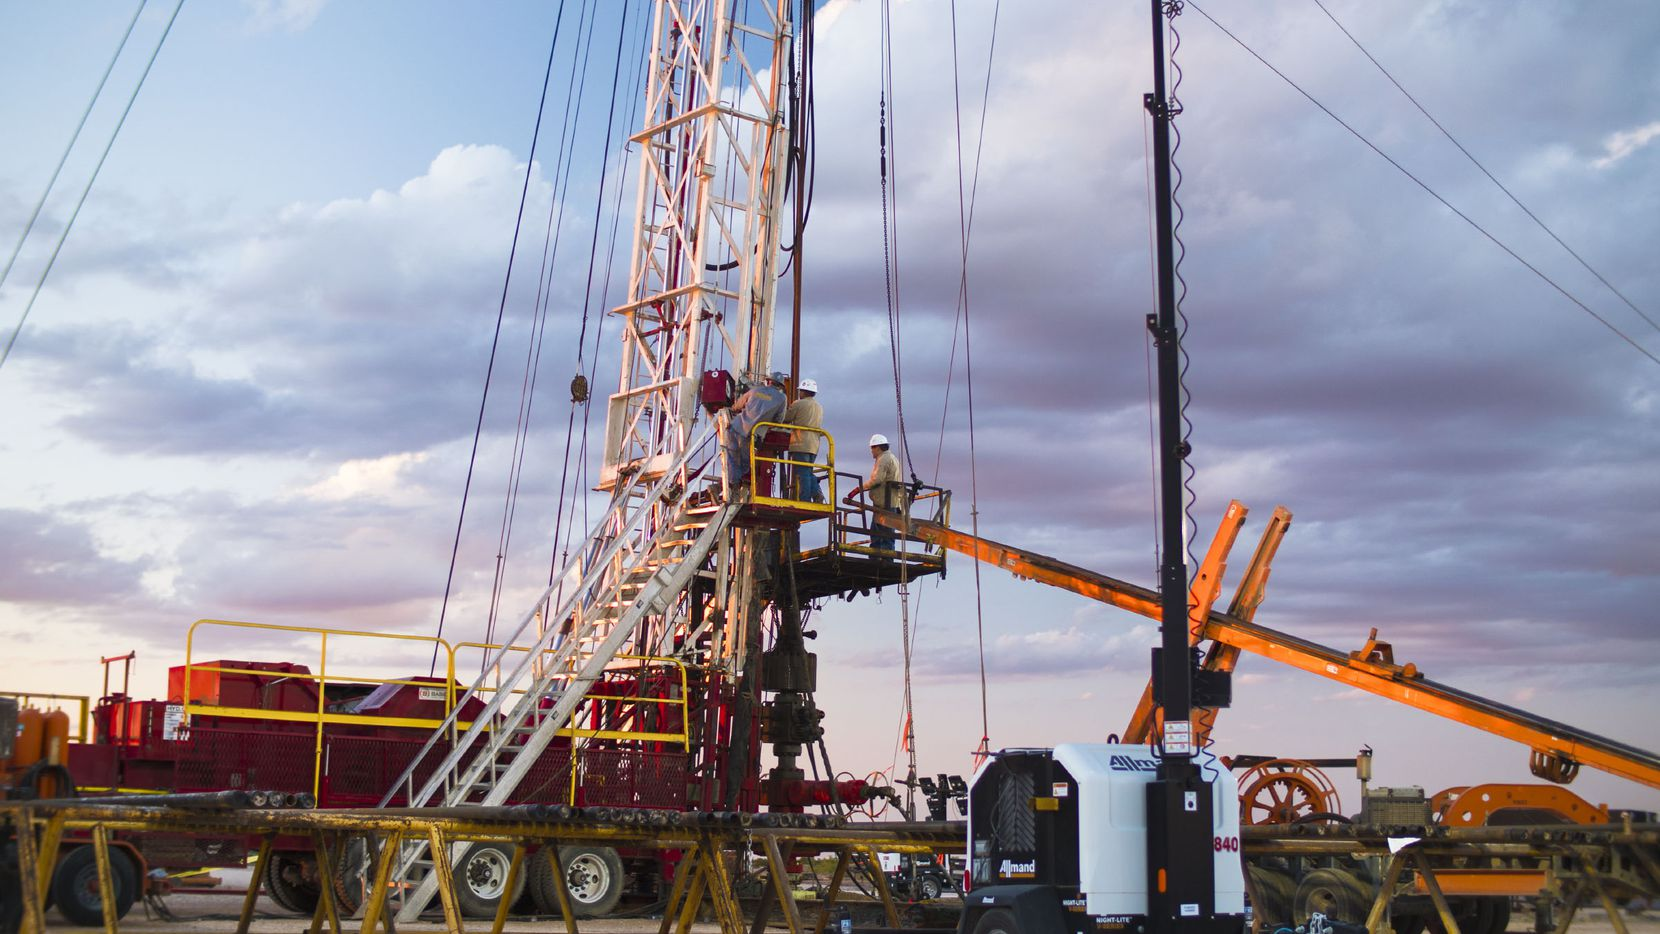 A 24-hour well servicing rig from Basic Energy Services operating in the Permian Basin.